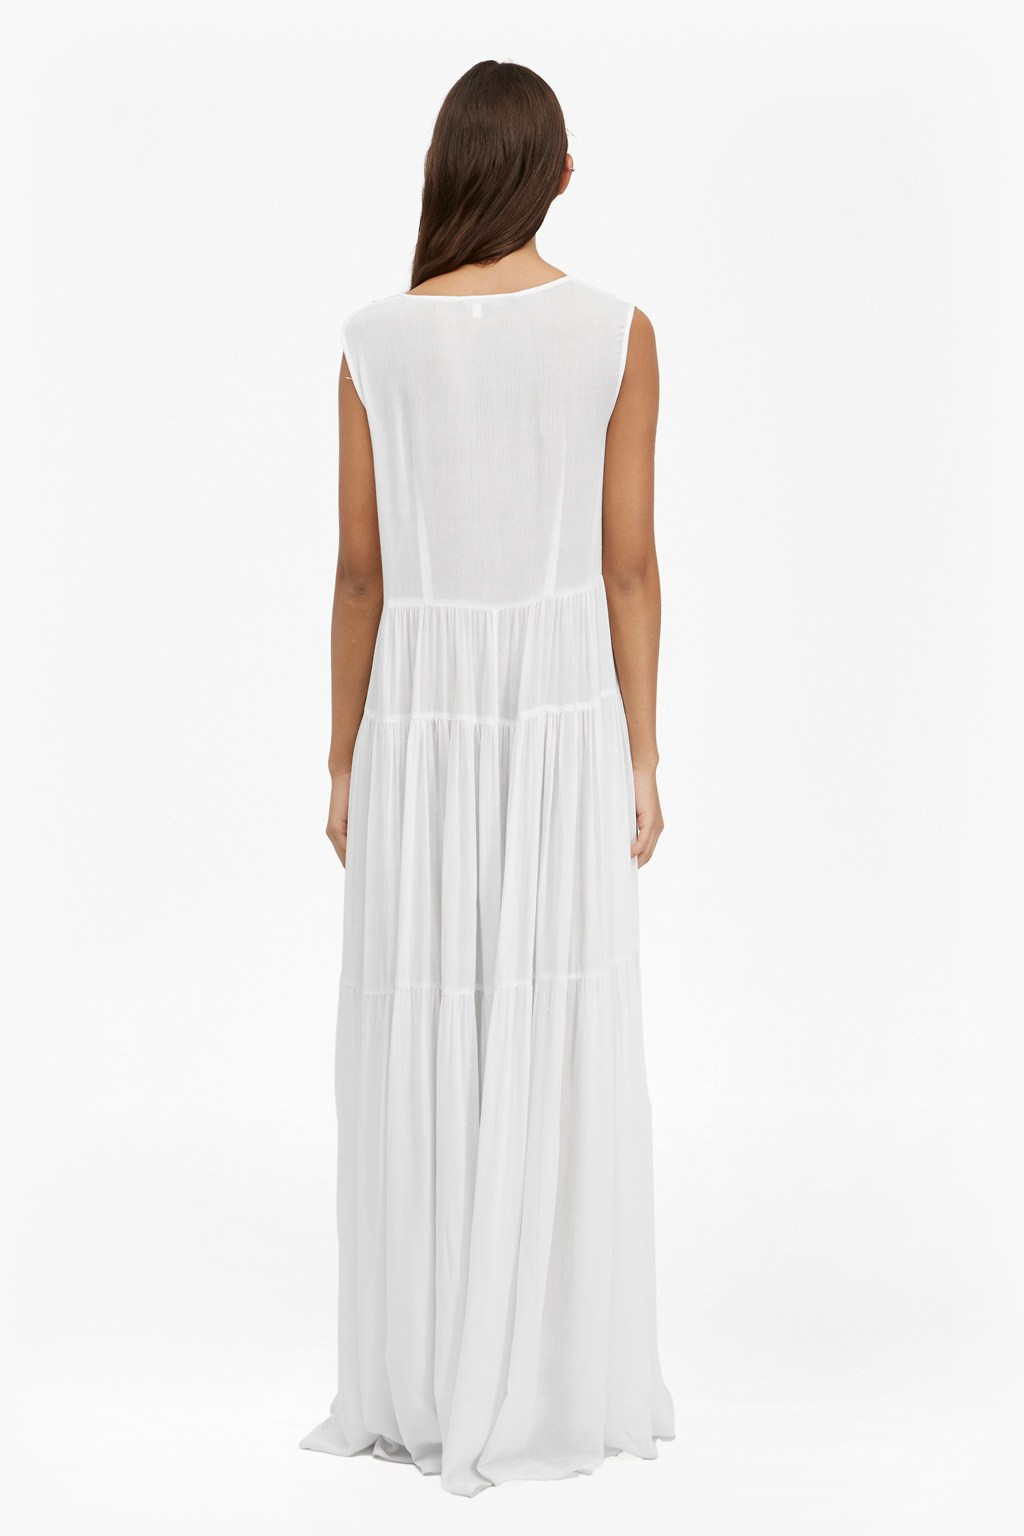 Castaway Lace Maxi Dress - Sale - French Connection Usa